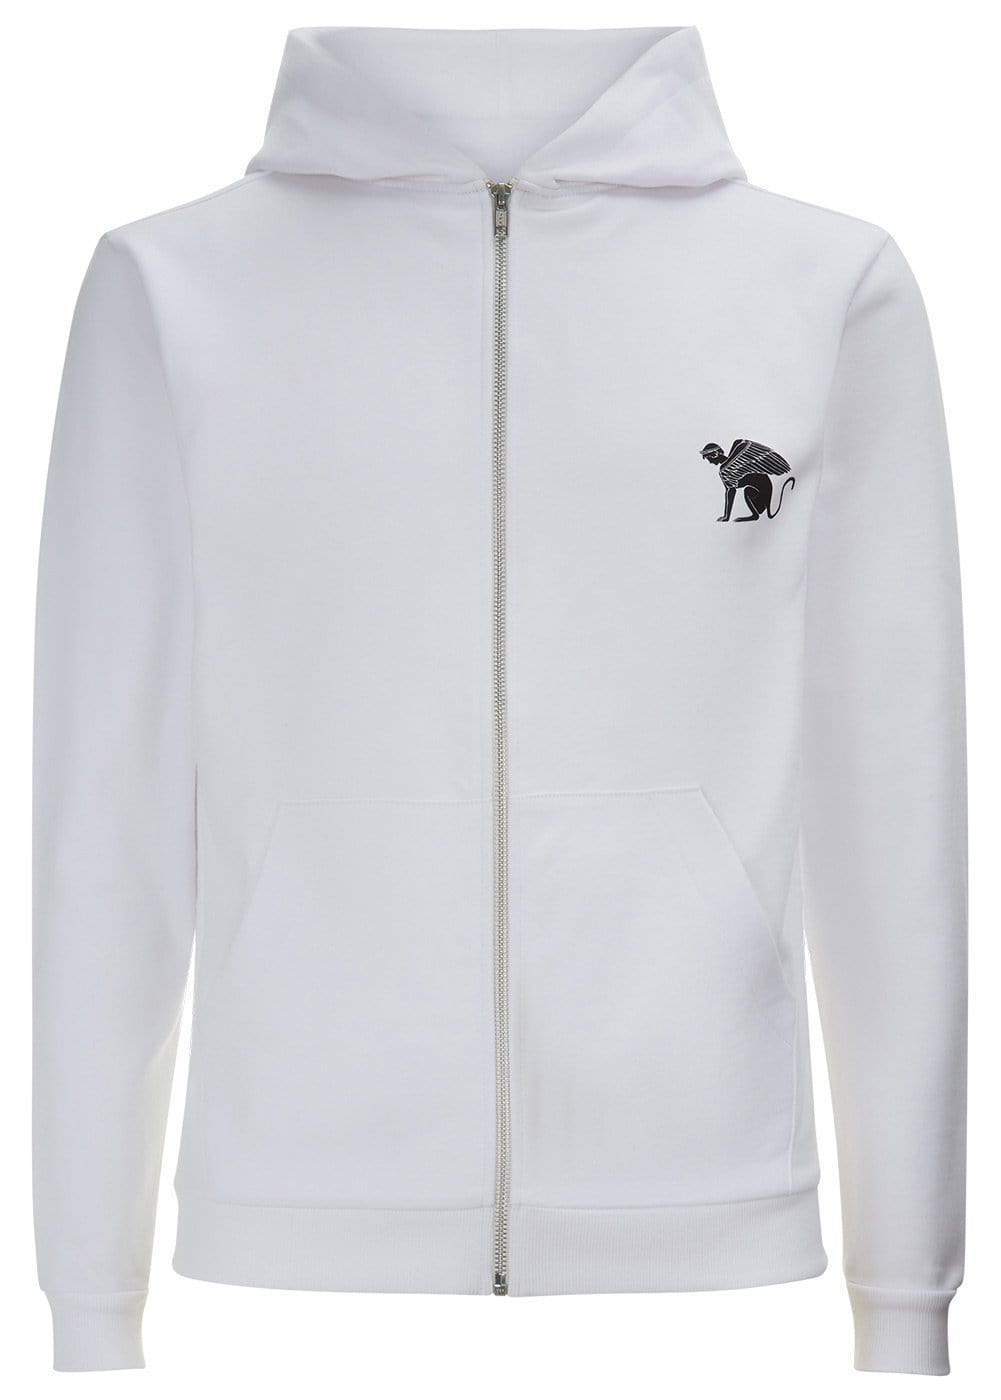 Boys White Zip-Up Toro Hoodie - Front